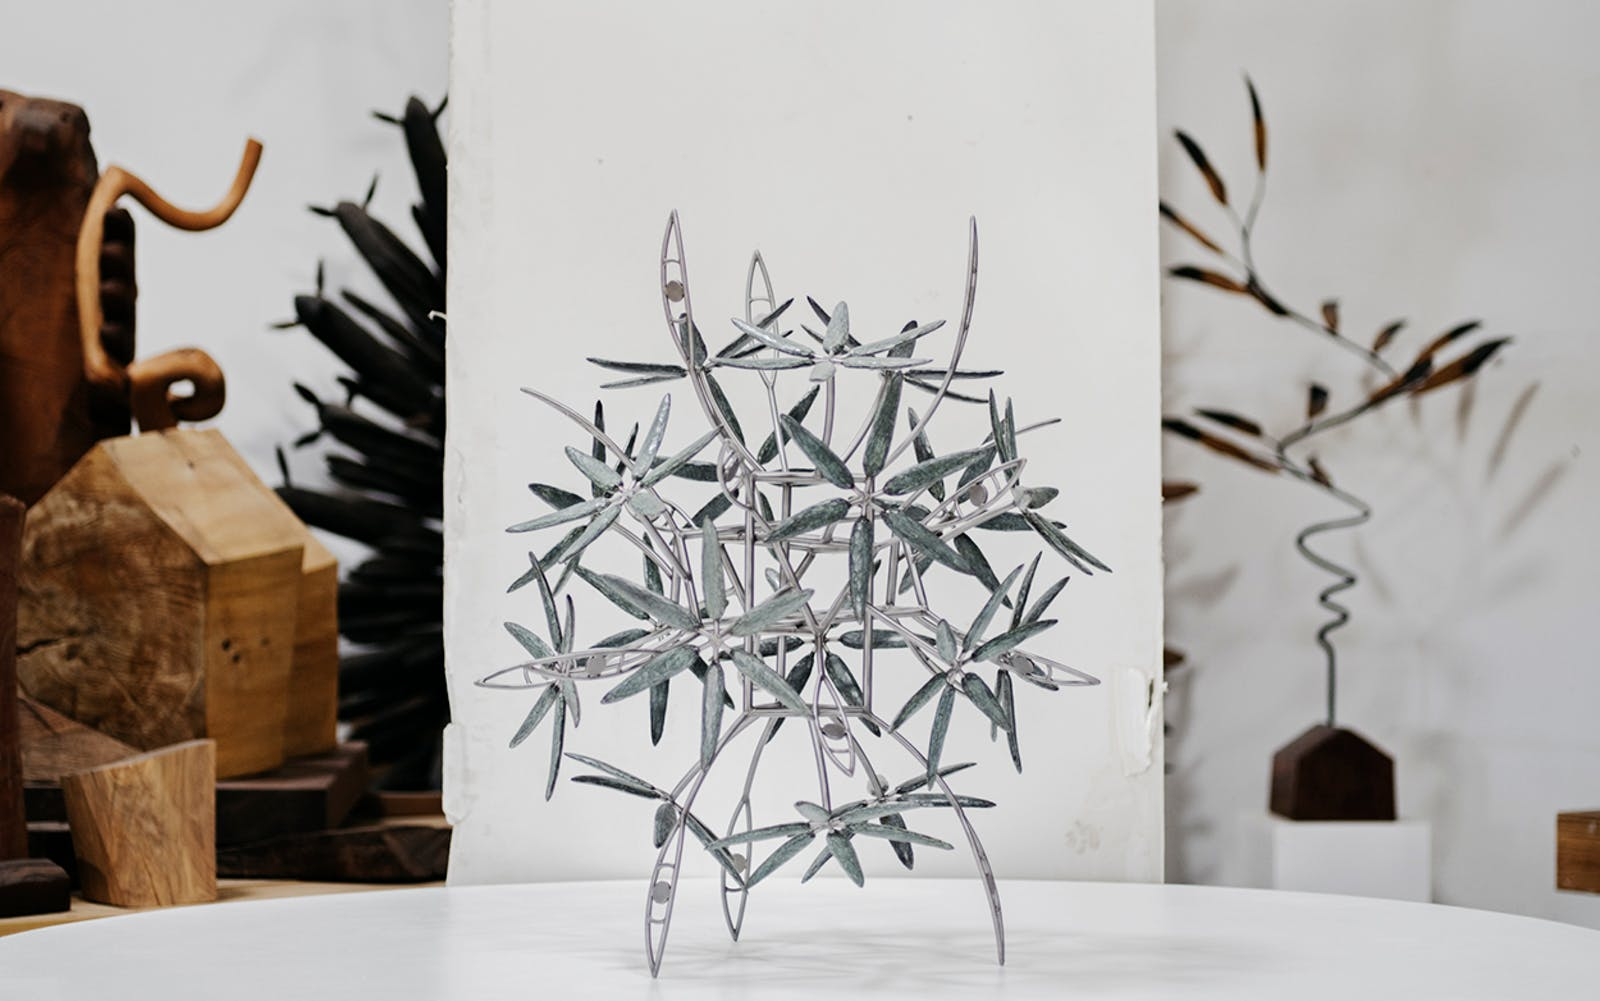 """A small-scale version of the """"This Place, Everywhere"""" sculpture, which was a commission for The Dallas Holocaust Museum/Center for Education and Tolerance, in Surls's Colorado studio on July 20, 2018."""